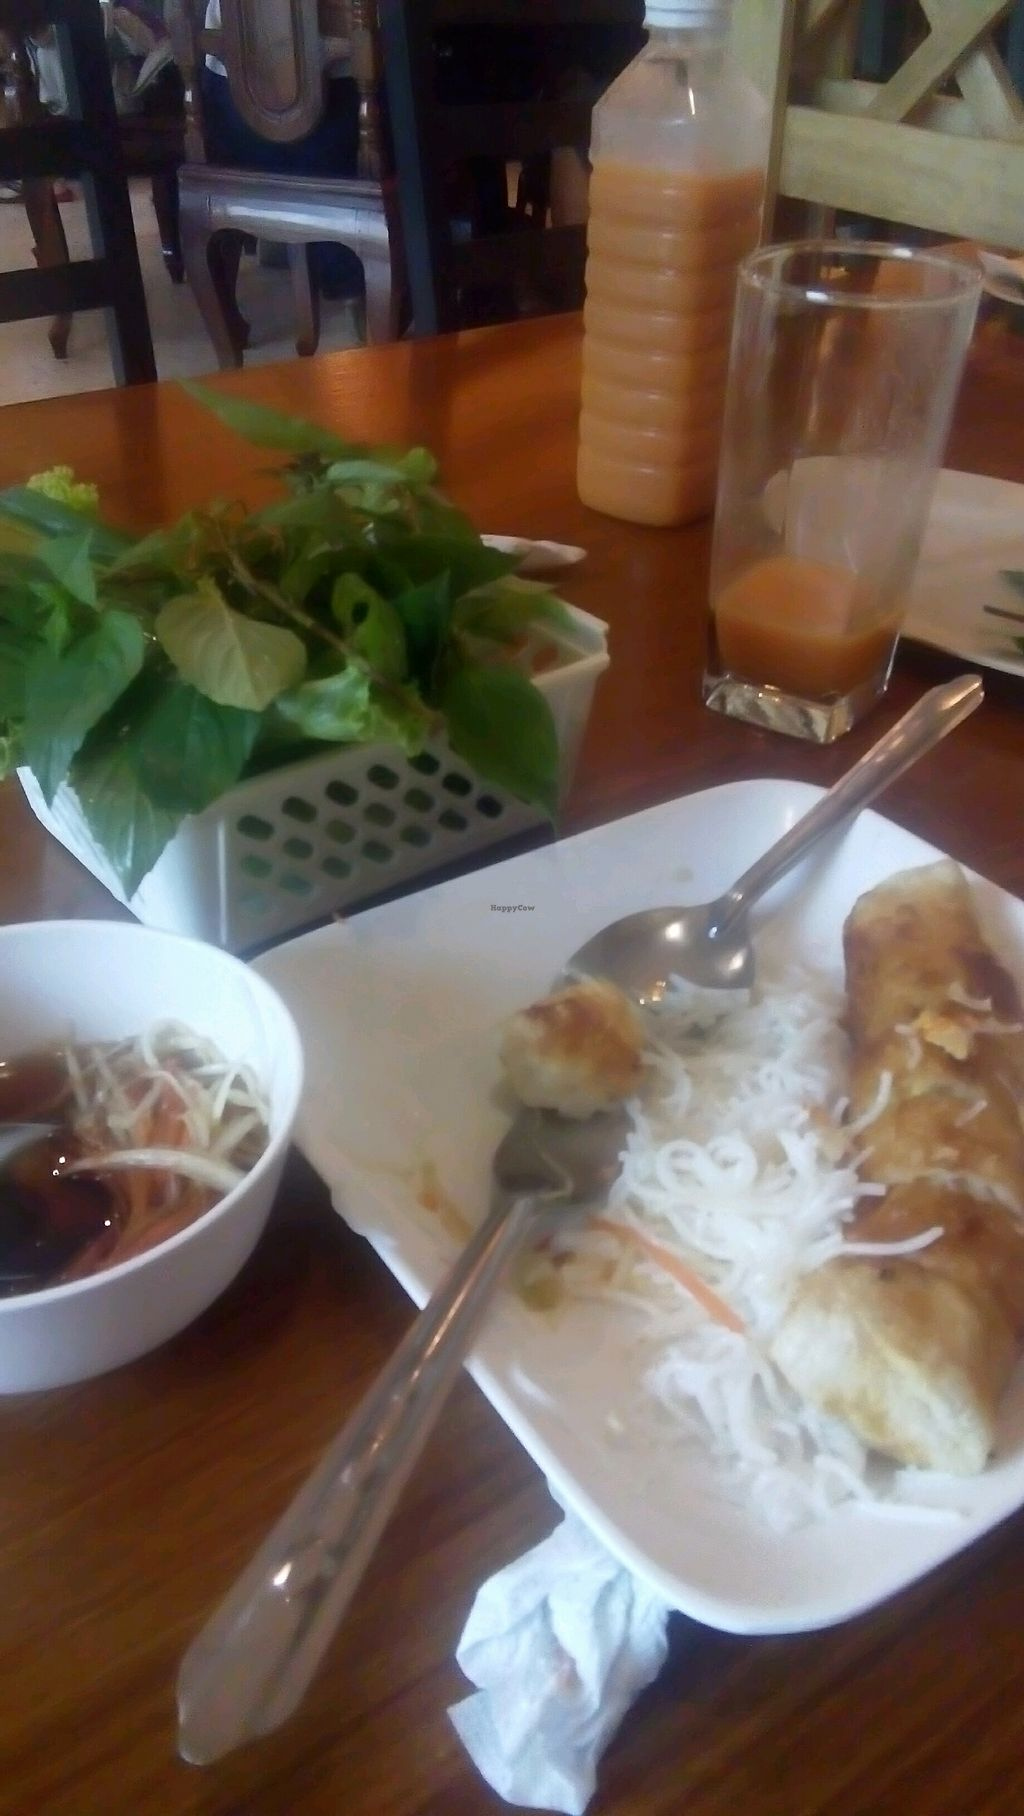 """Photo of Hanoi Kitchen  by <a href=""""/members/profile/daleyz"""">daleyz</a> <br/>ate dome already <br/> February 4, 2018  - <a href='/contact/abuse/image/109685/354767'>Report</a>"""